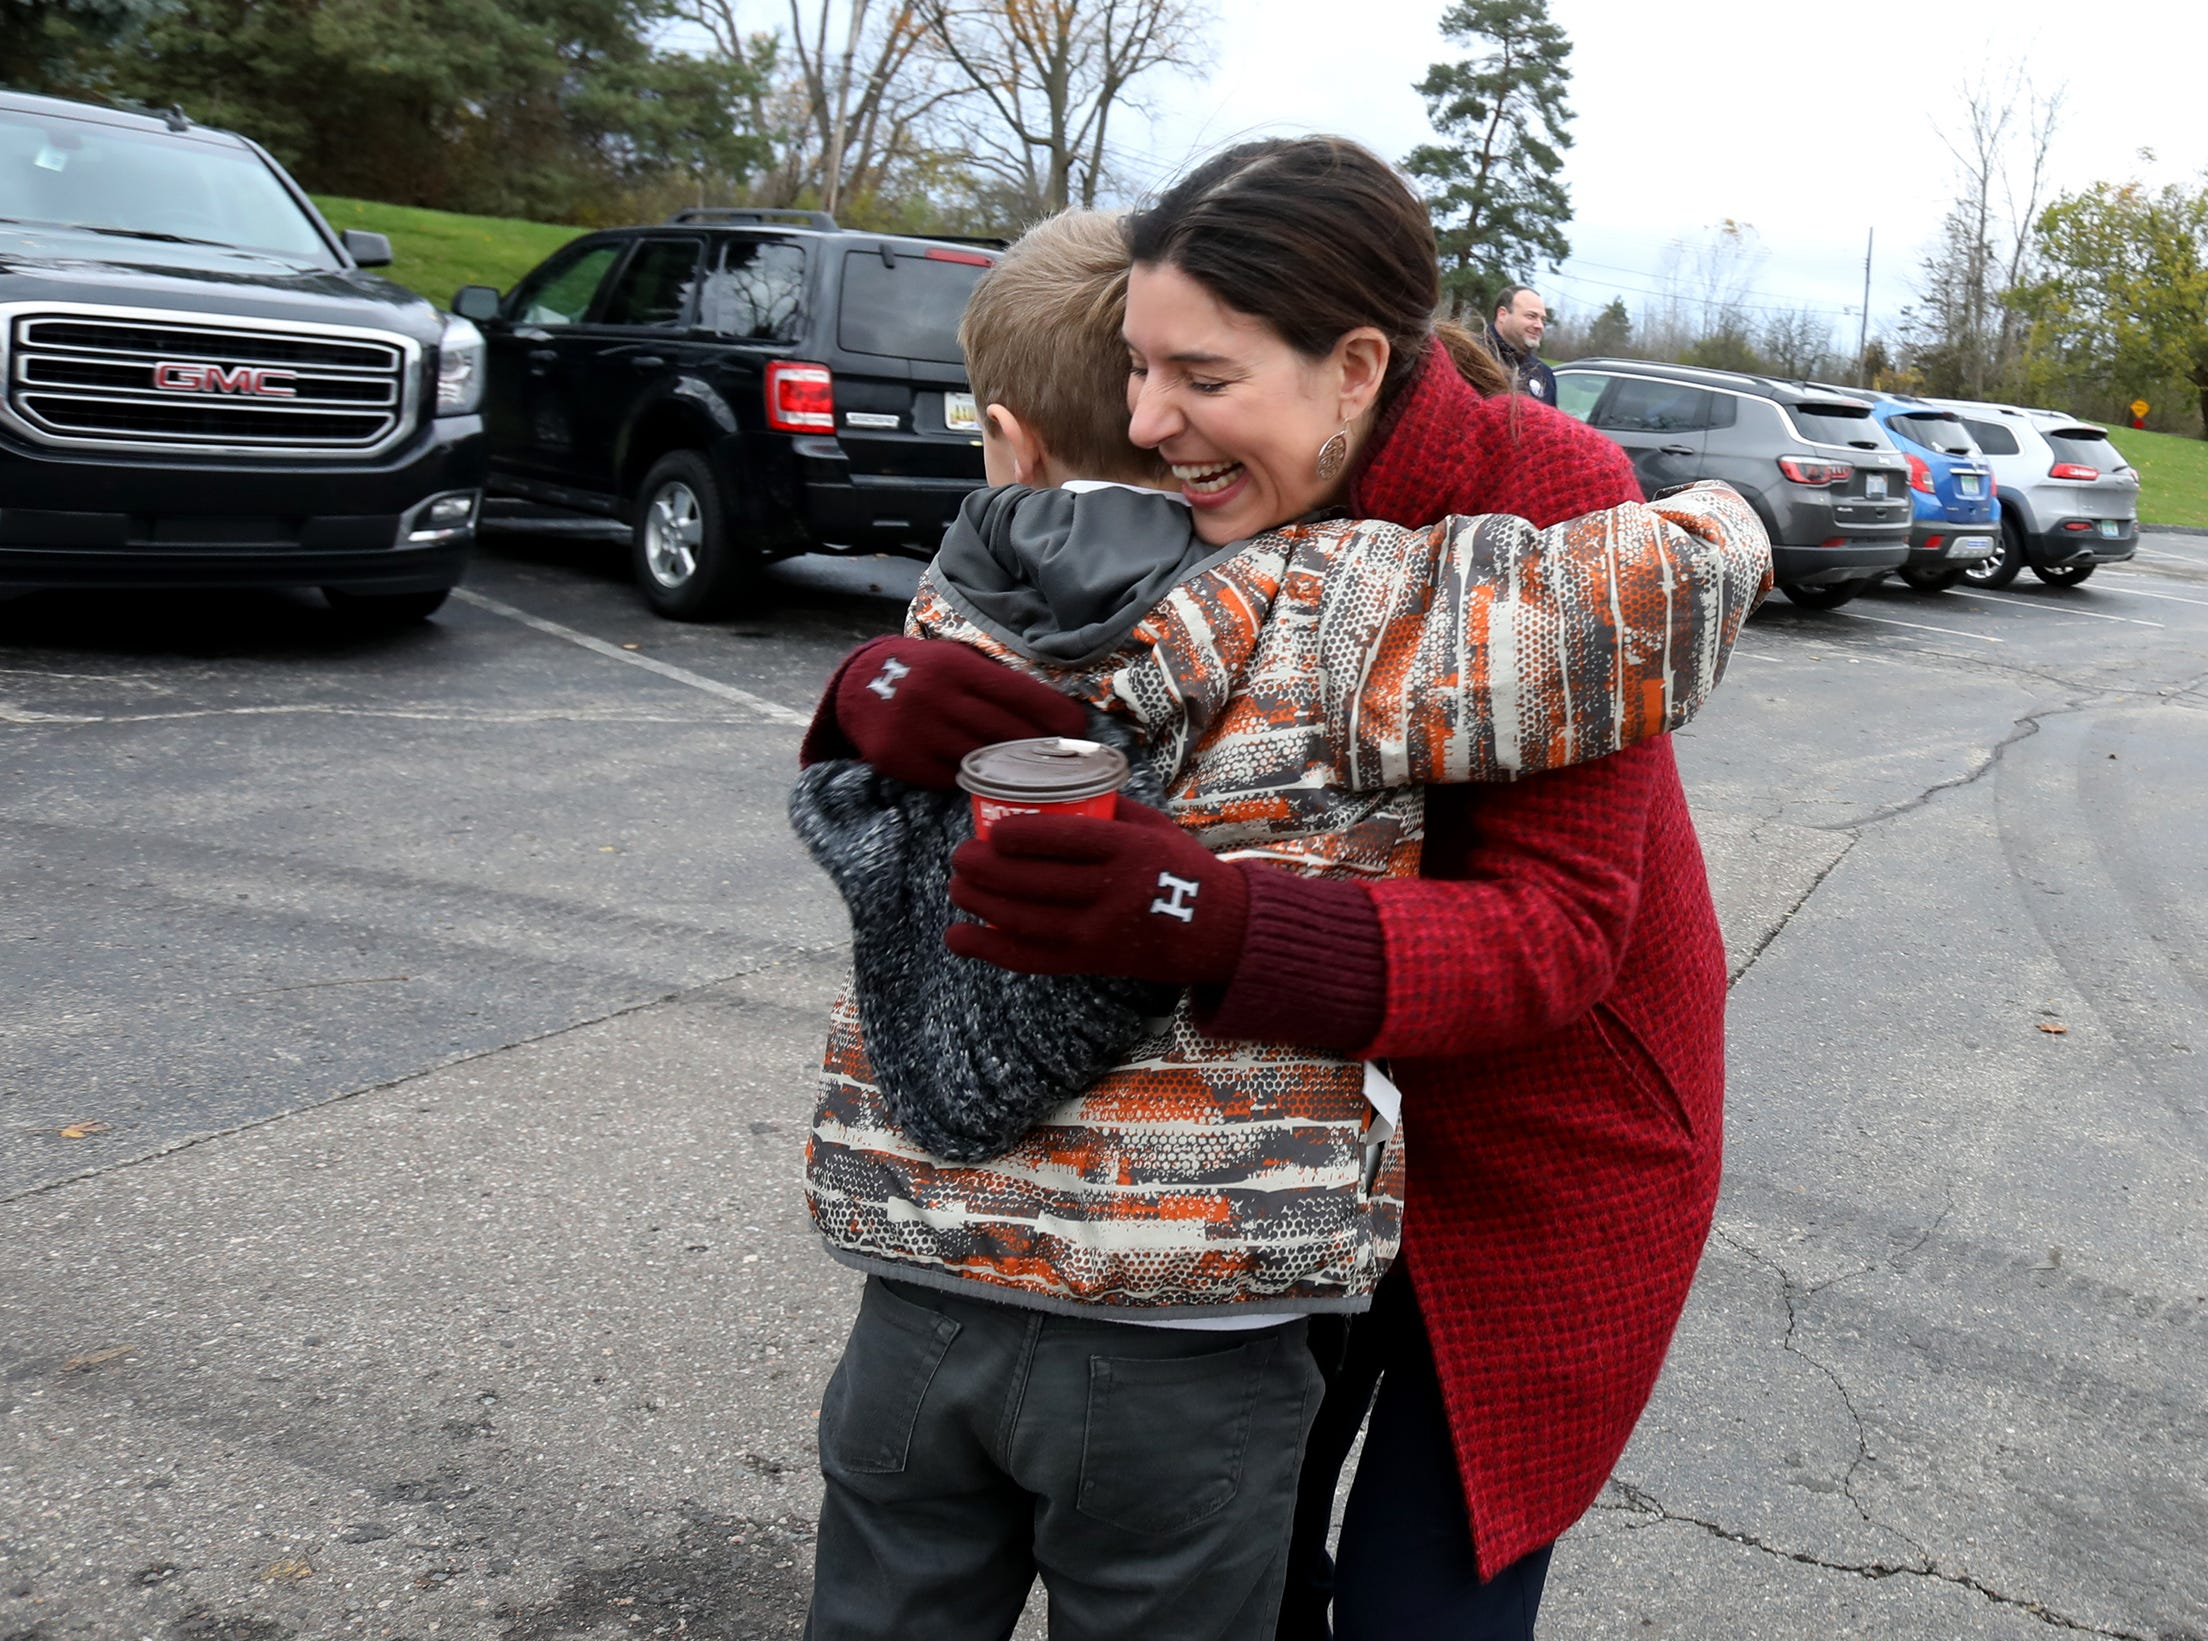 Lena Epstein running for Michigan's 11th congressional district gets a hug from 10-year-old Mike Molenda of Troy who came with his father Paul Molenda to vote at St. Nicholas Greek Orthodox Church in Troy, Michigan on November 6, 2018.Molenda had recognized Epstein from the political ads on TV and wanted to say hi to her.